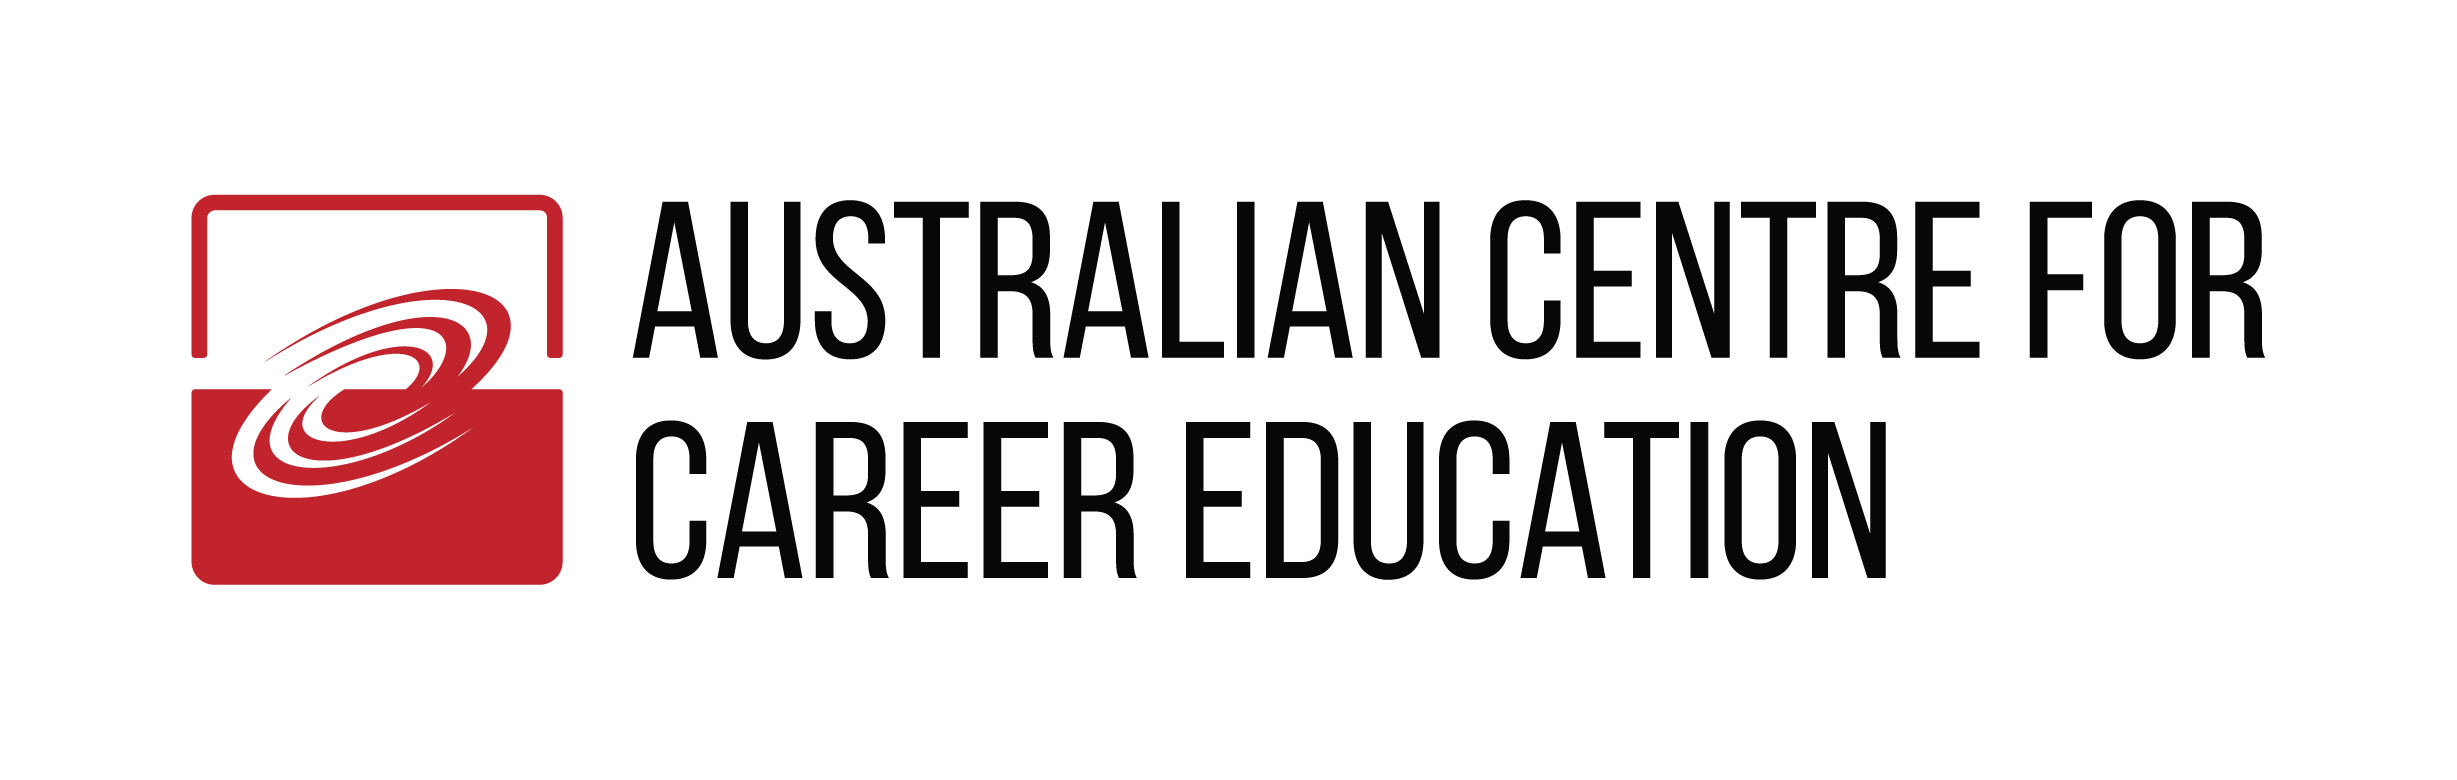 ACCE Main Logo 2015 – Red and Black (cropped)